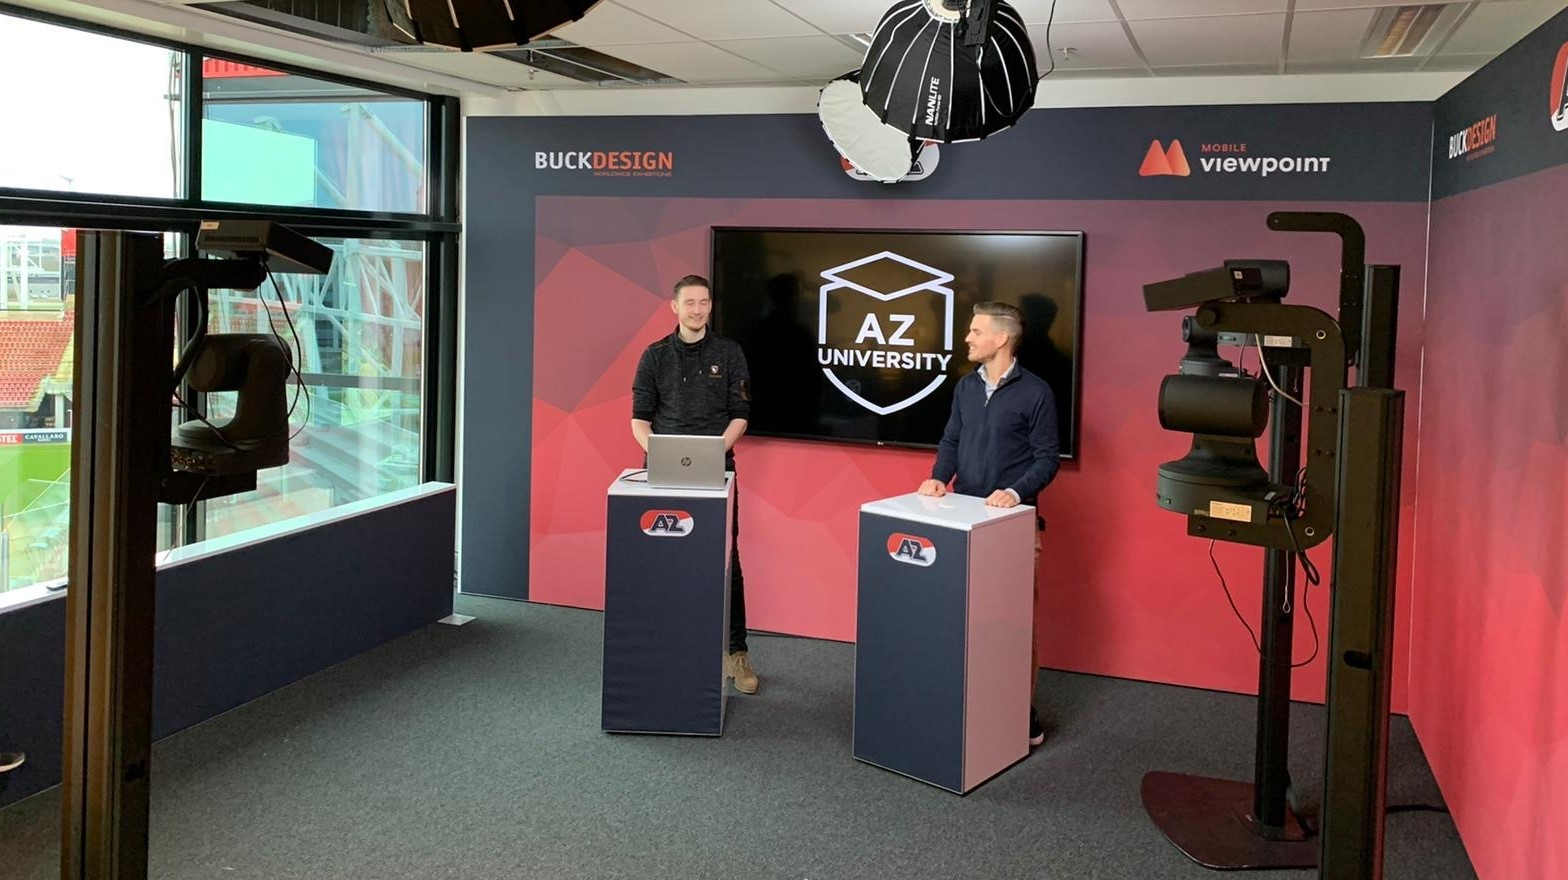 Top league Football club AZ chooses AI driven Camera Studio System